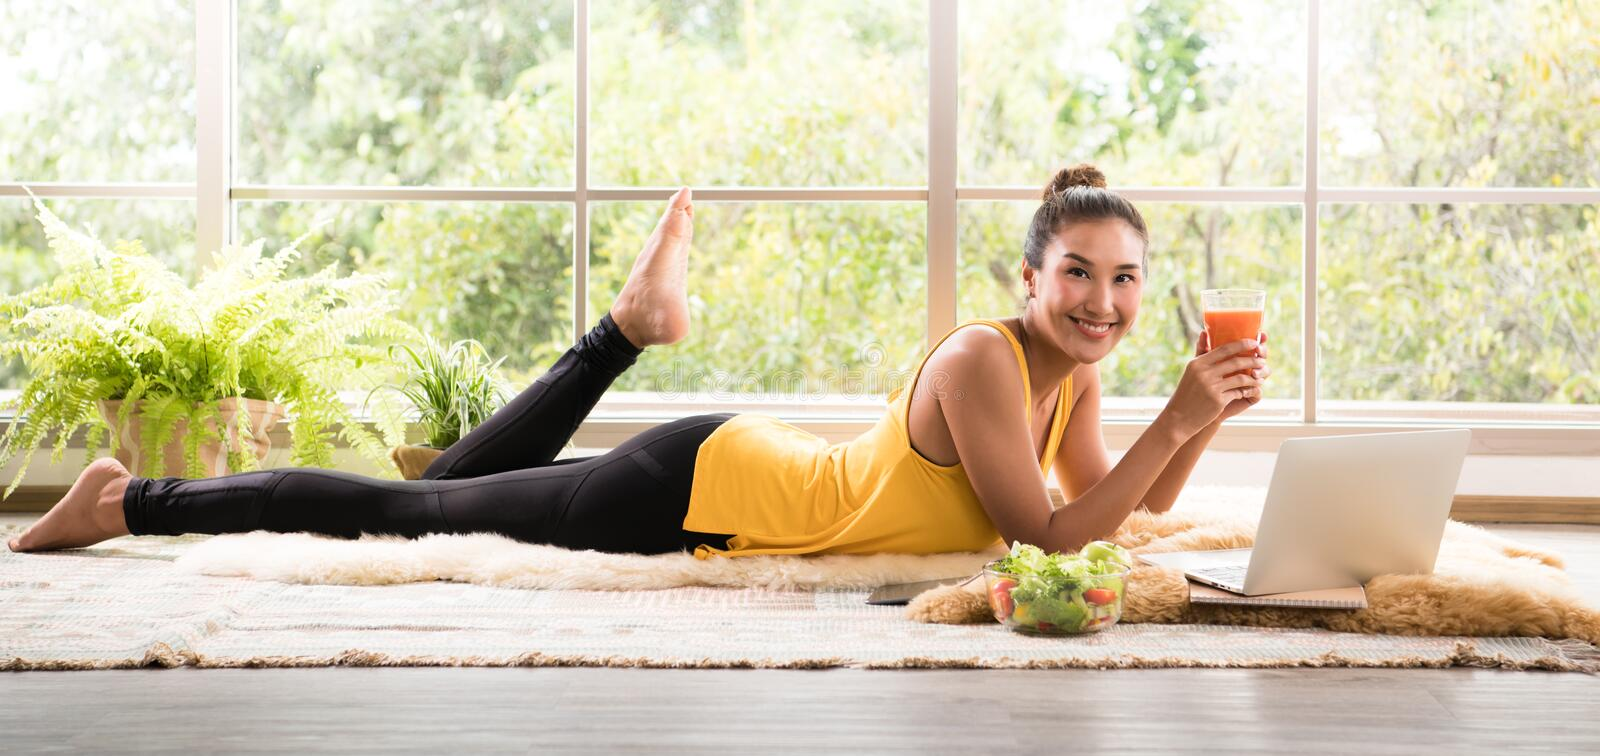 Healthy Asian woman lying on the floor eating salad looking relaxed and comfortable stock photography